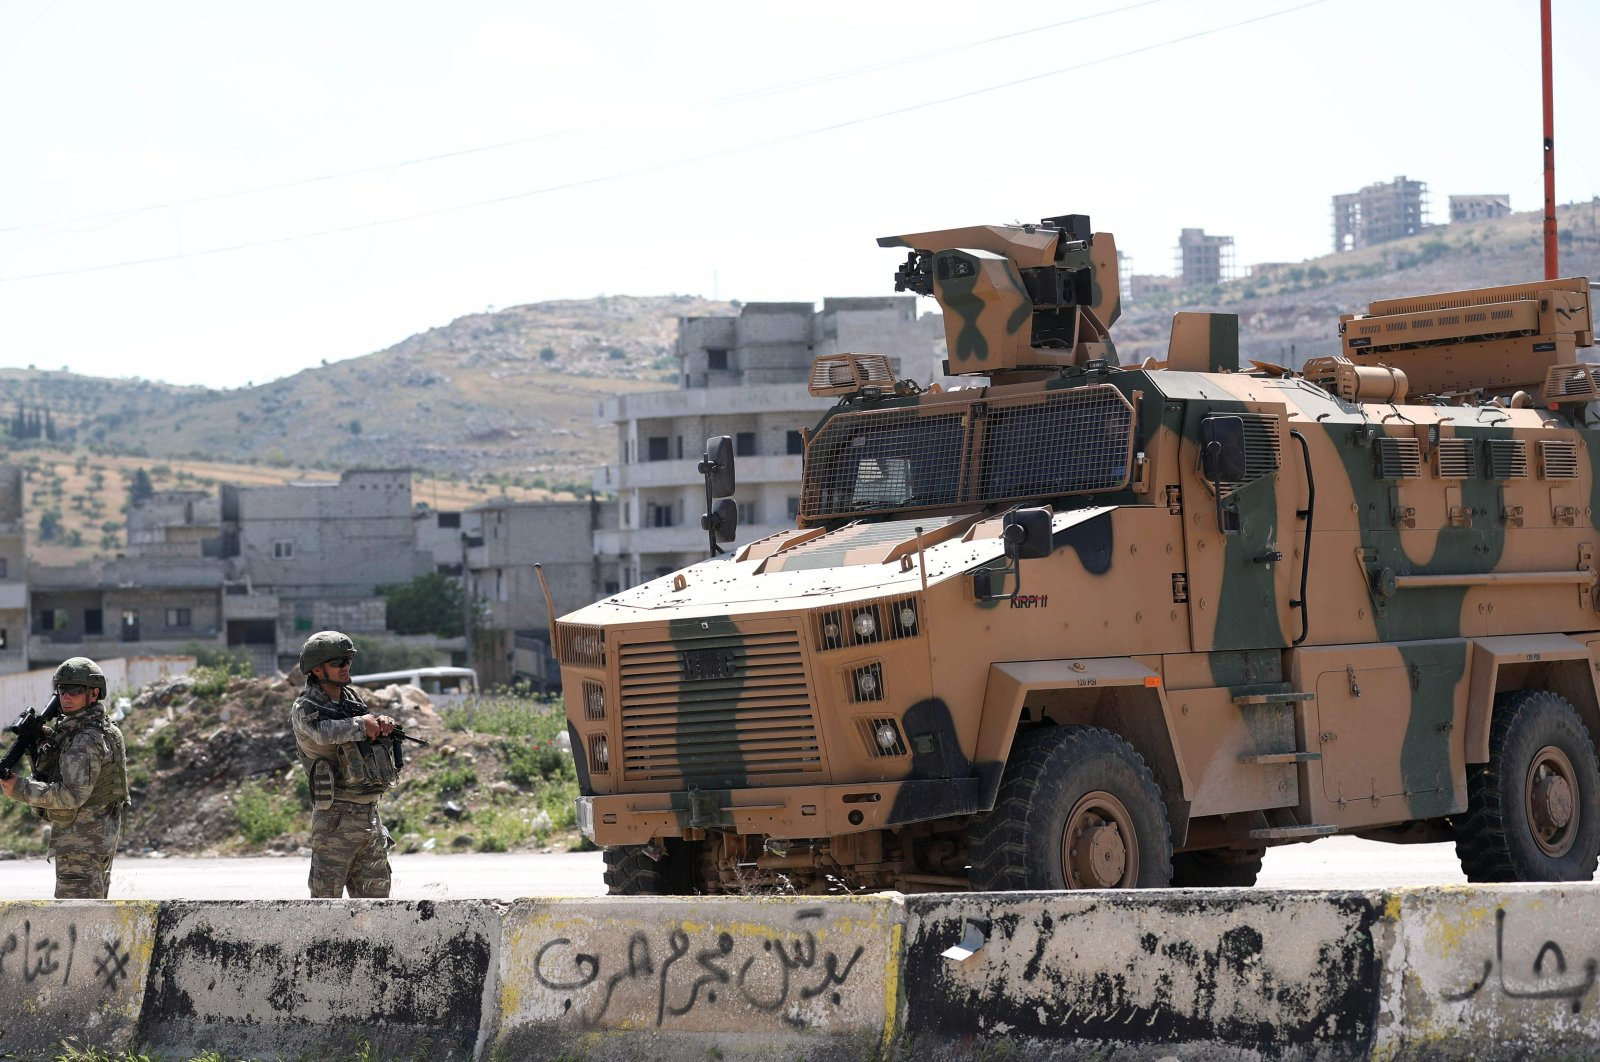 Turkish troops stand next to one of their armoured vehicles as they secure the road on the M4 highway between Saraqeb and Ariha in Syria's Idlib province, May 7, 2020. (AFP)